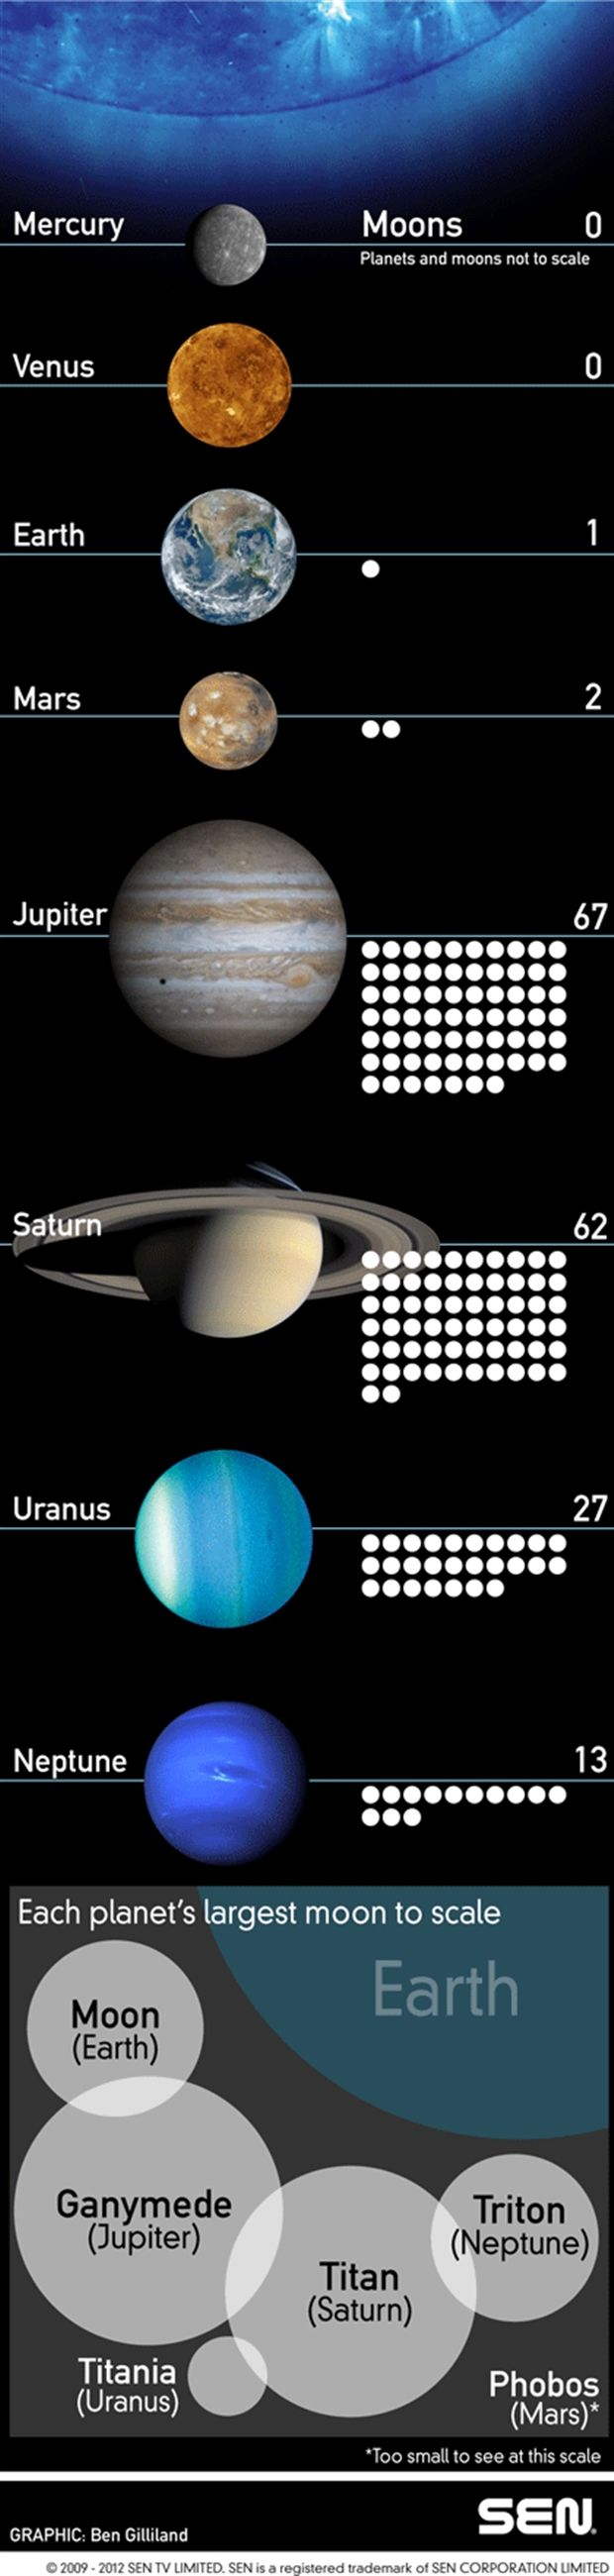 planets with moons in the solar system - photo #22